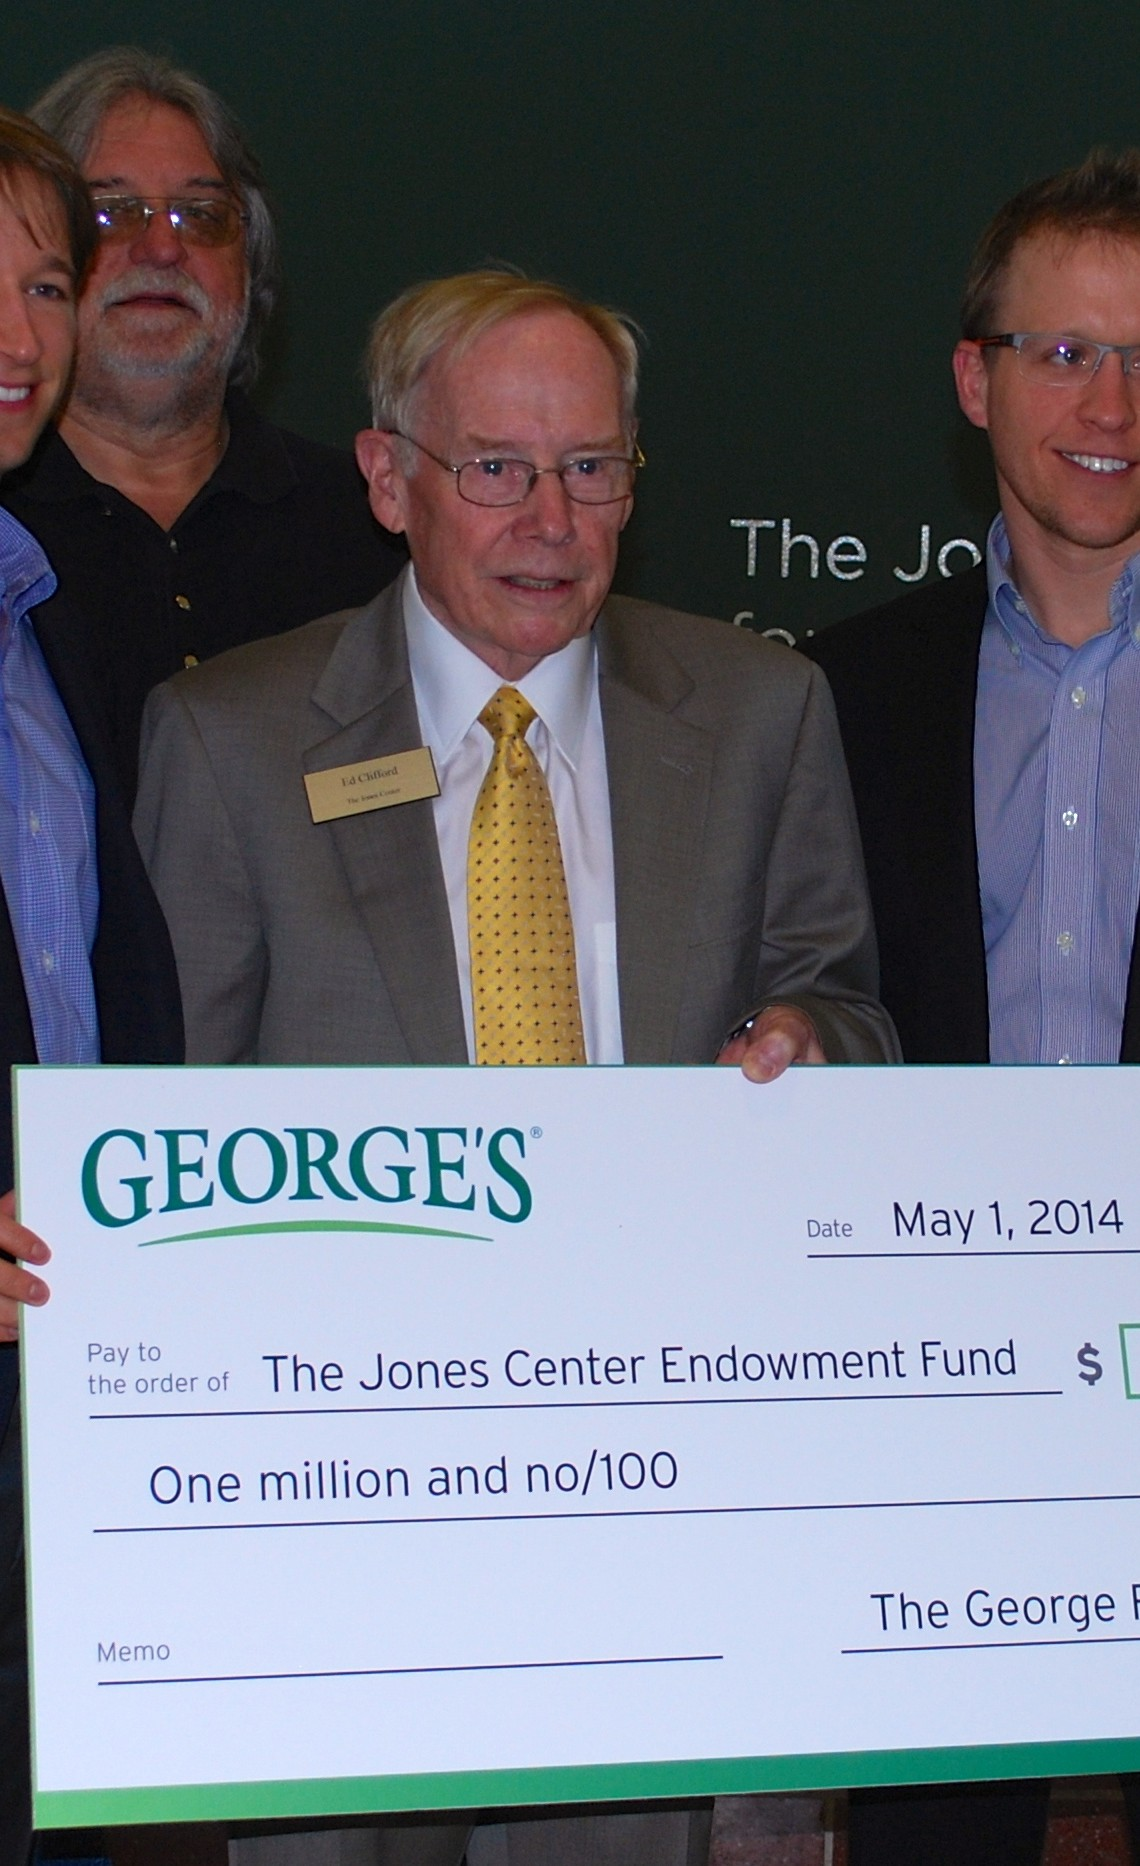 The George Family pledges $1 million to The Jones Center Endowment